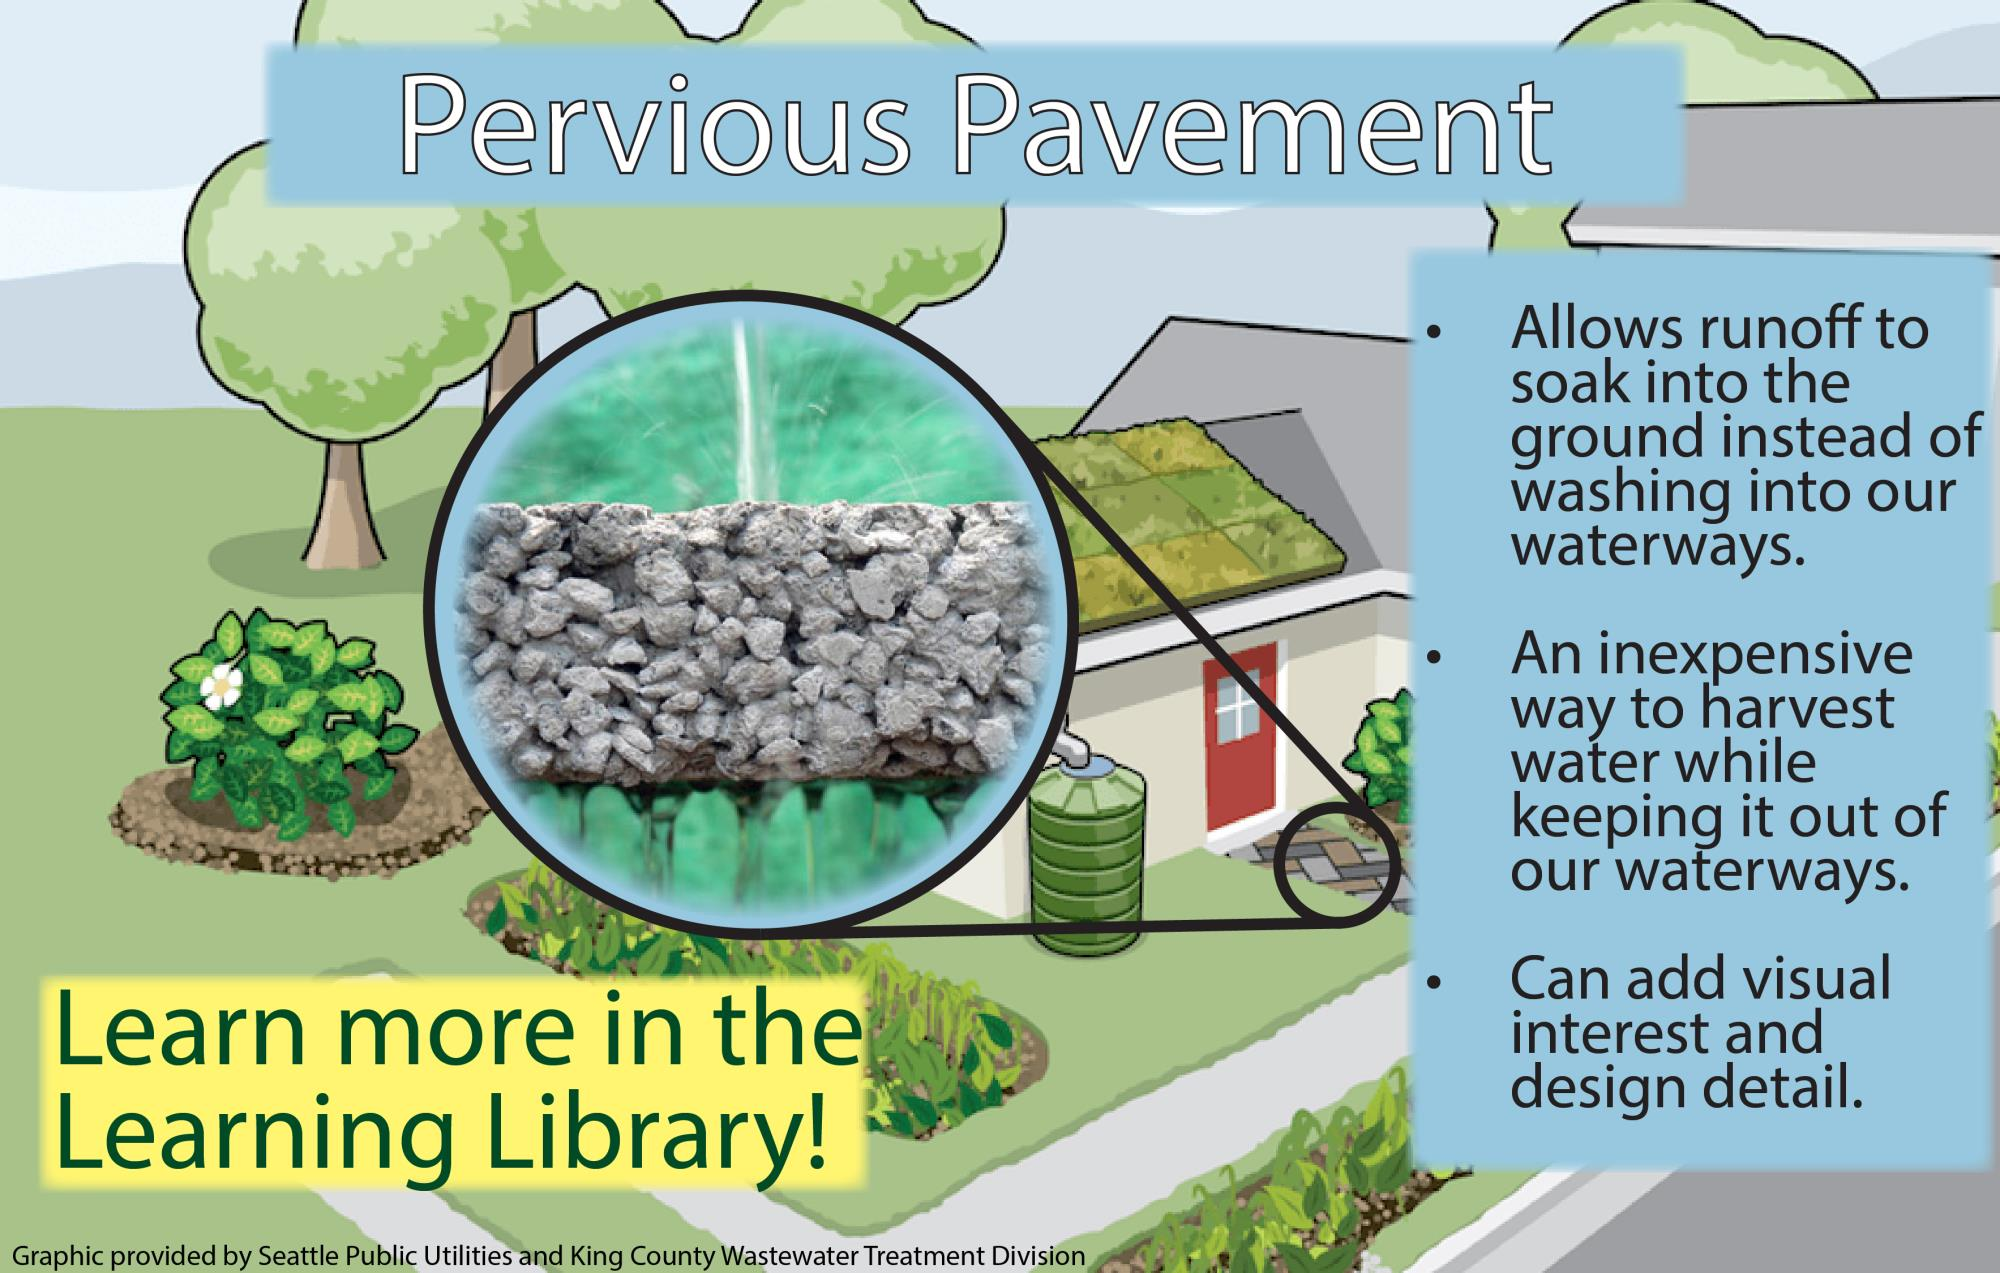 Pervious Pavement Infographic